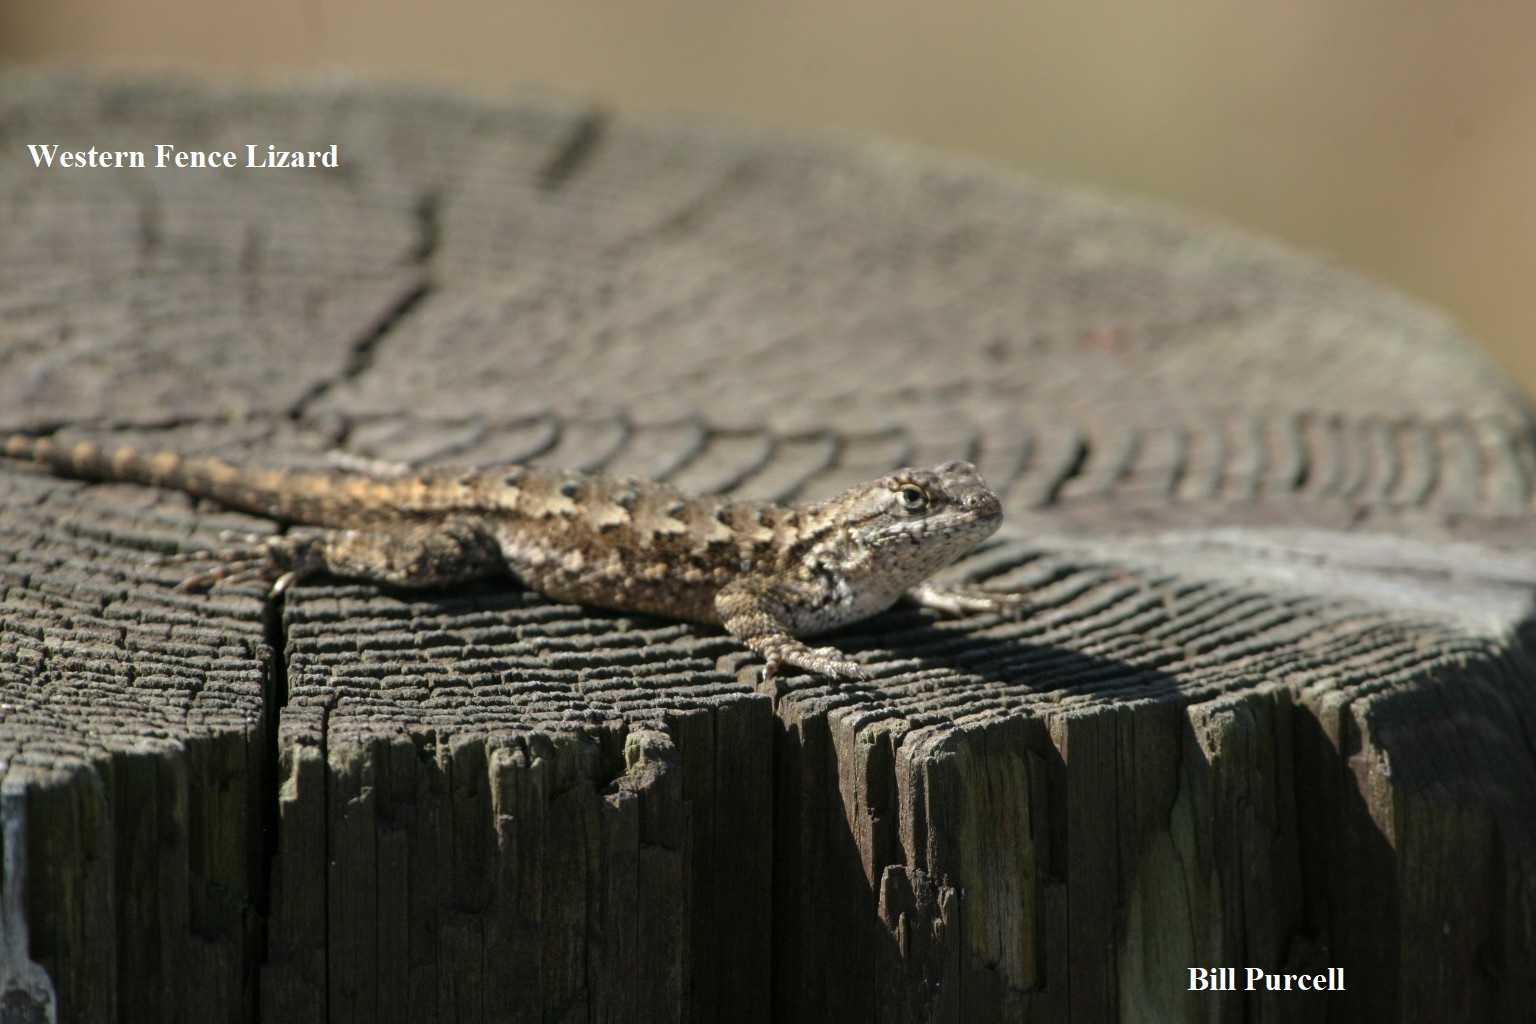 1 Western Fence Lizard Bill Purcell